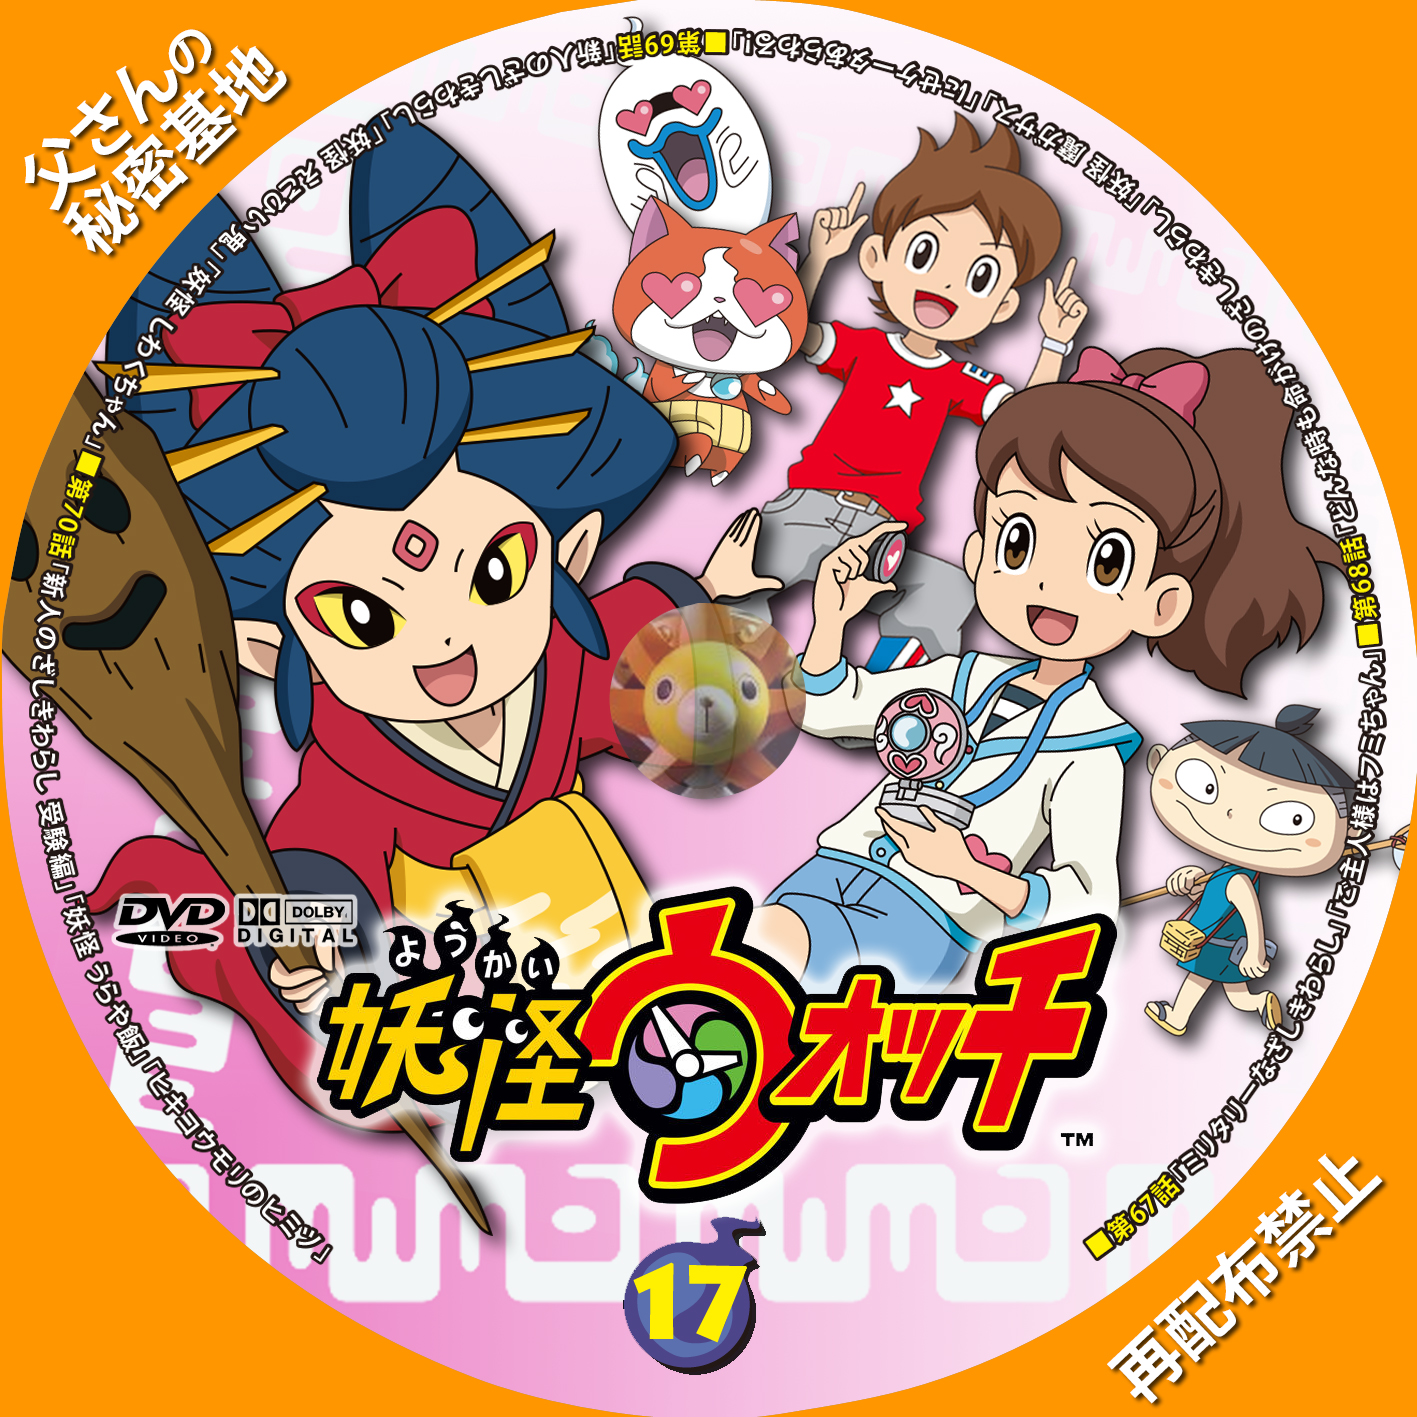 youkai-watch_17DVDa.jpg